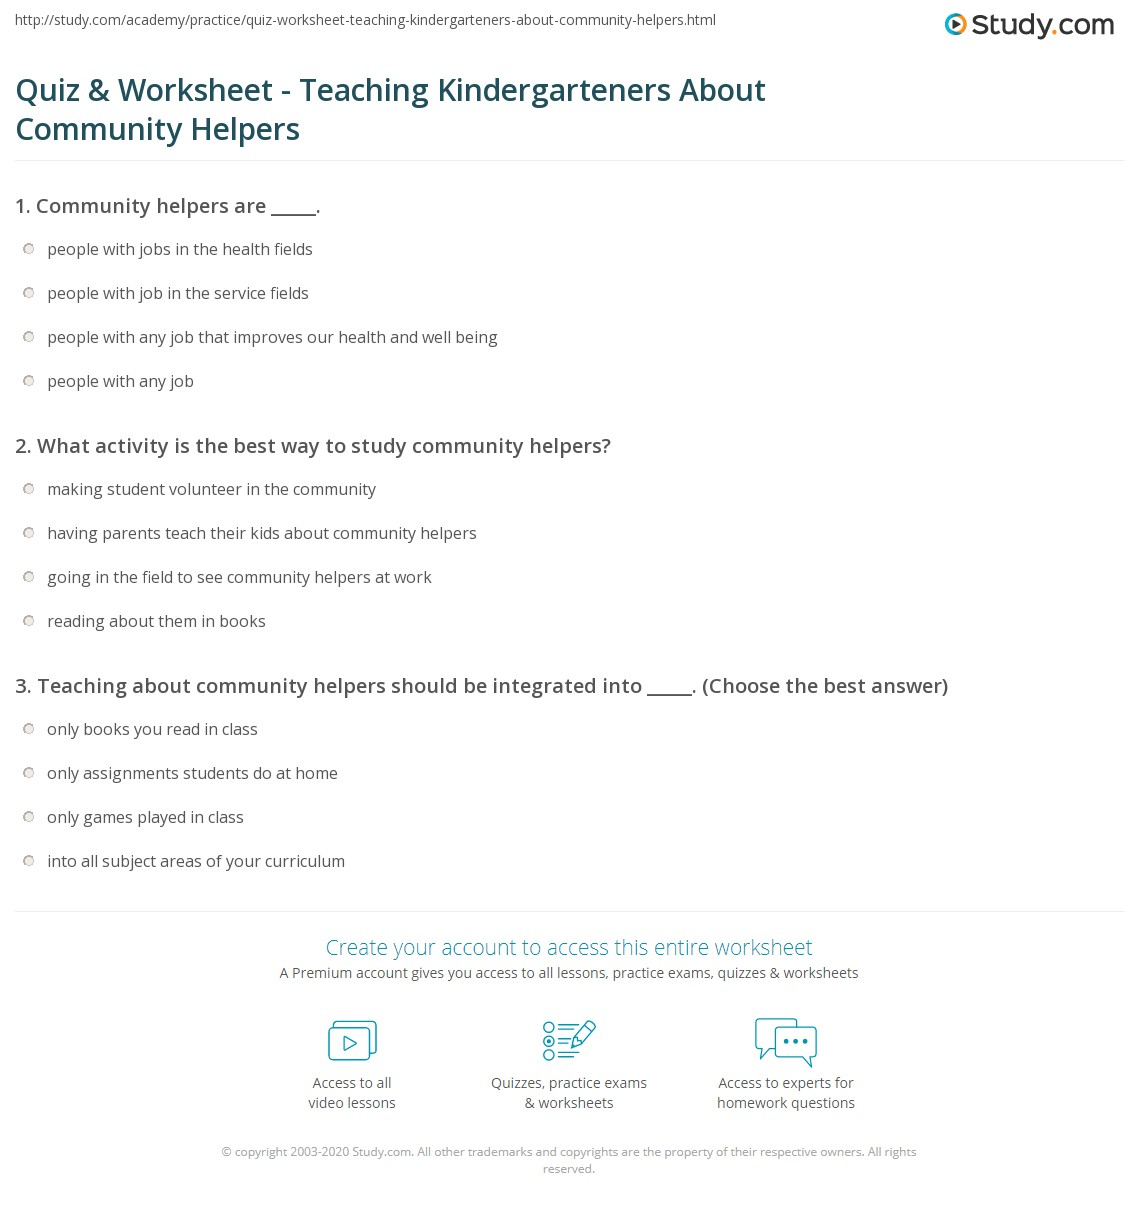 math worksheet : quiz  worksheet  teaching kindergarteners about community  : Community Helpers Kindergarten Worksheets